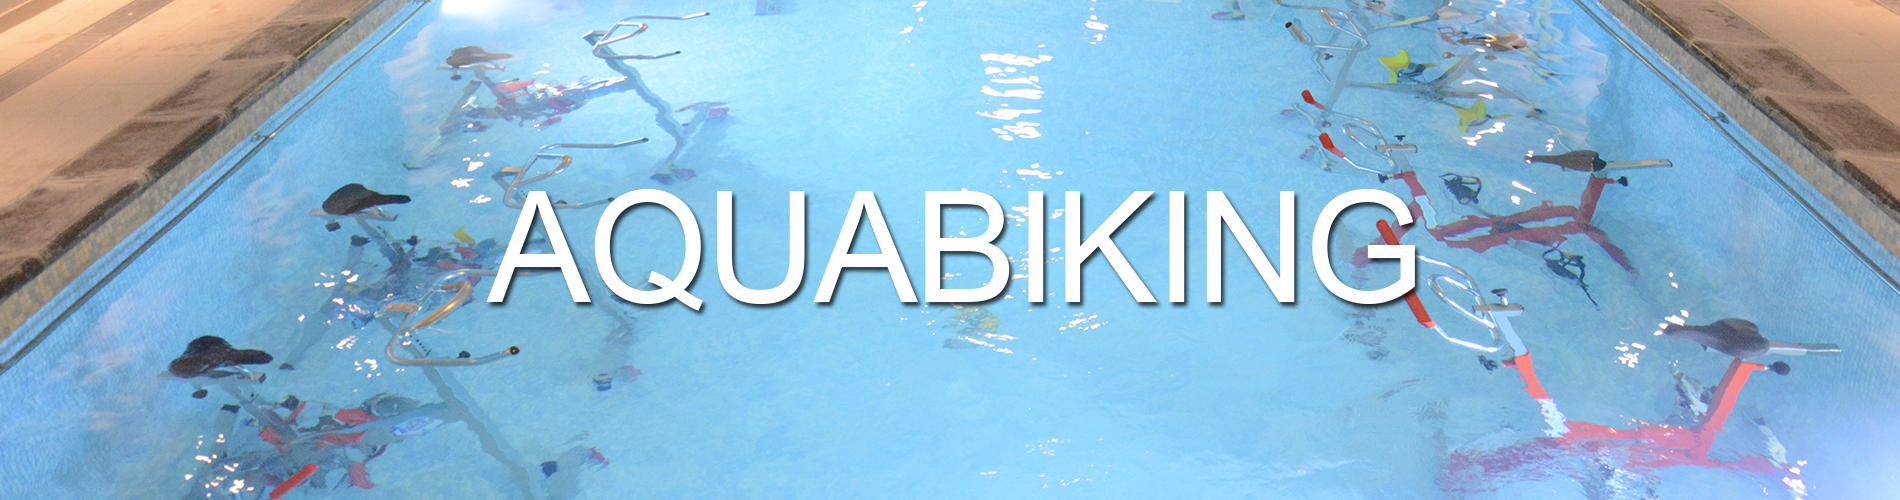 aquabiking_centrebleuazur1